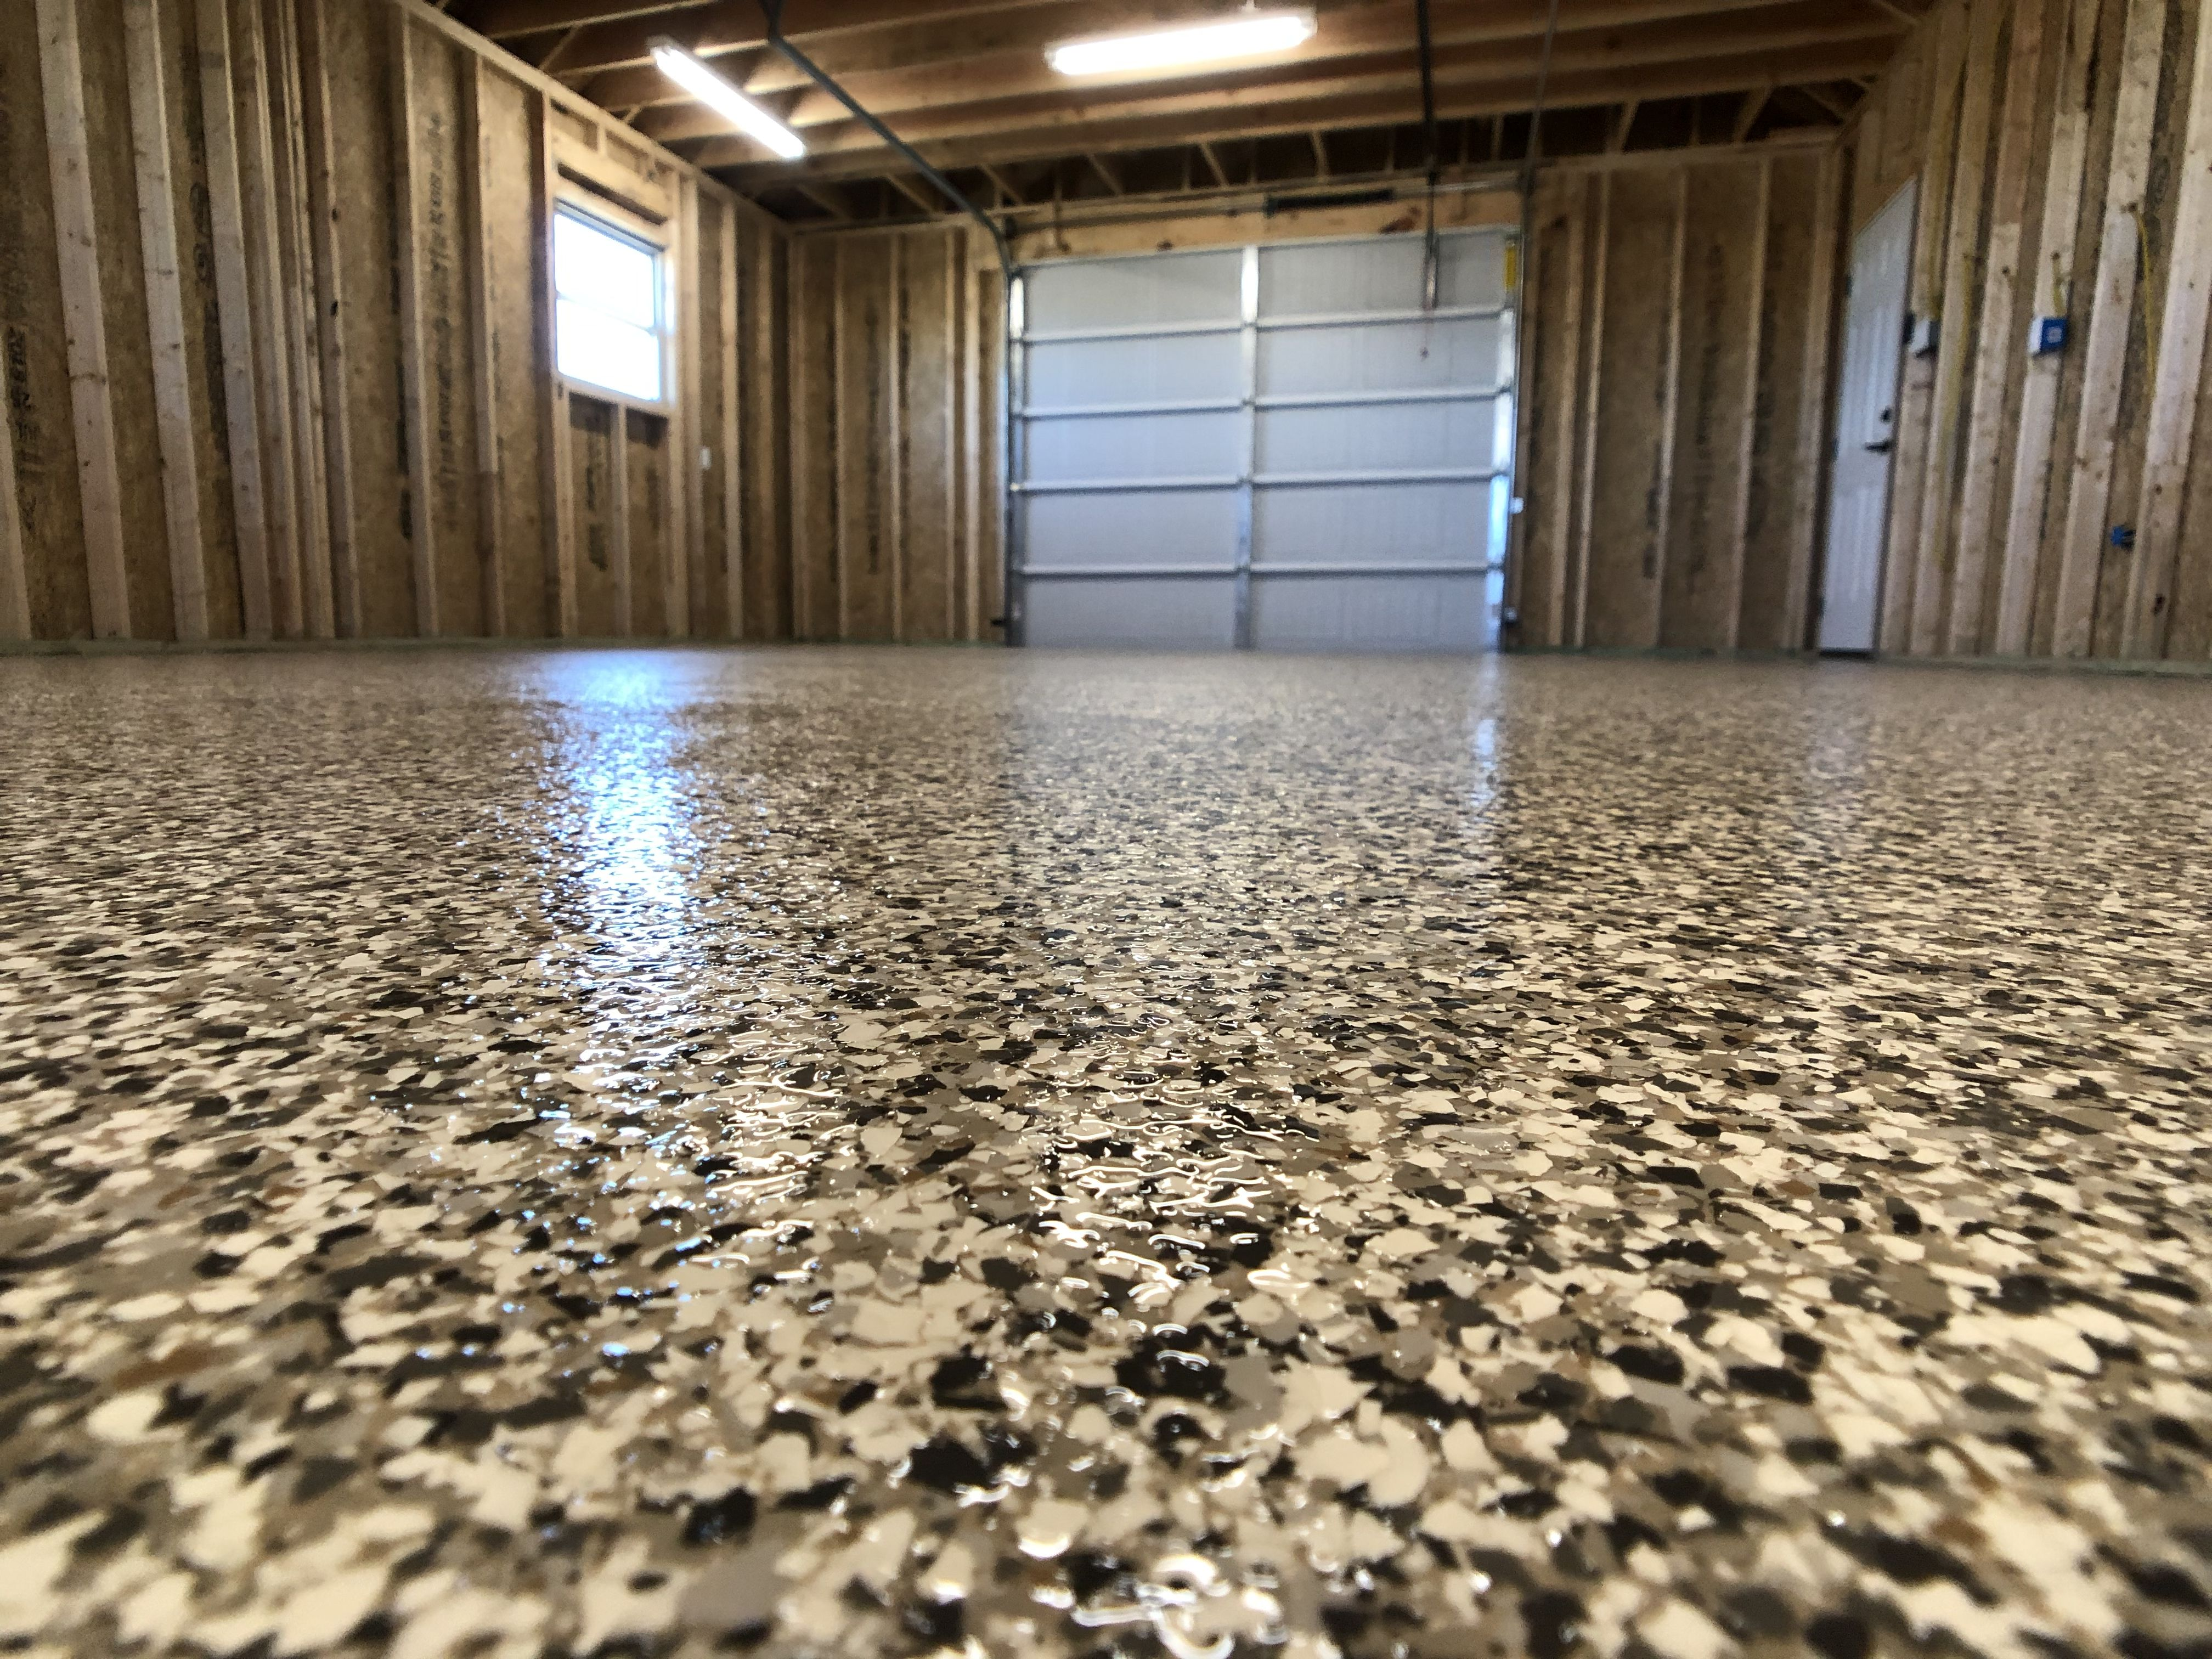 Garage Floor Coating Epoxy Flake Coating Patios Concrete Garage Floor Epoxy Garage Floor Coatings Floor Coating